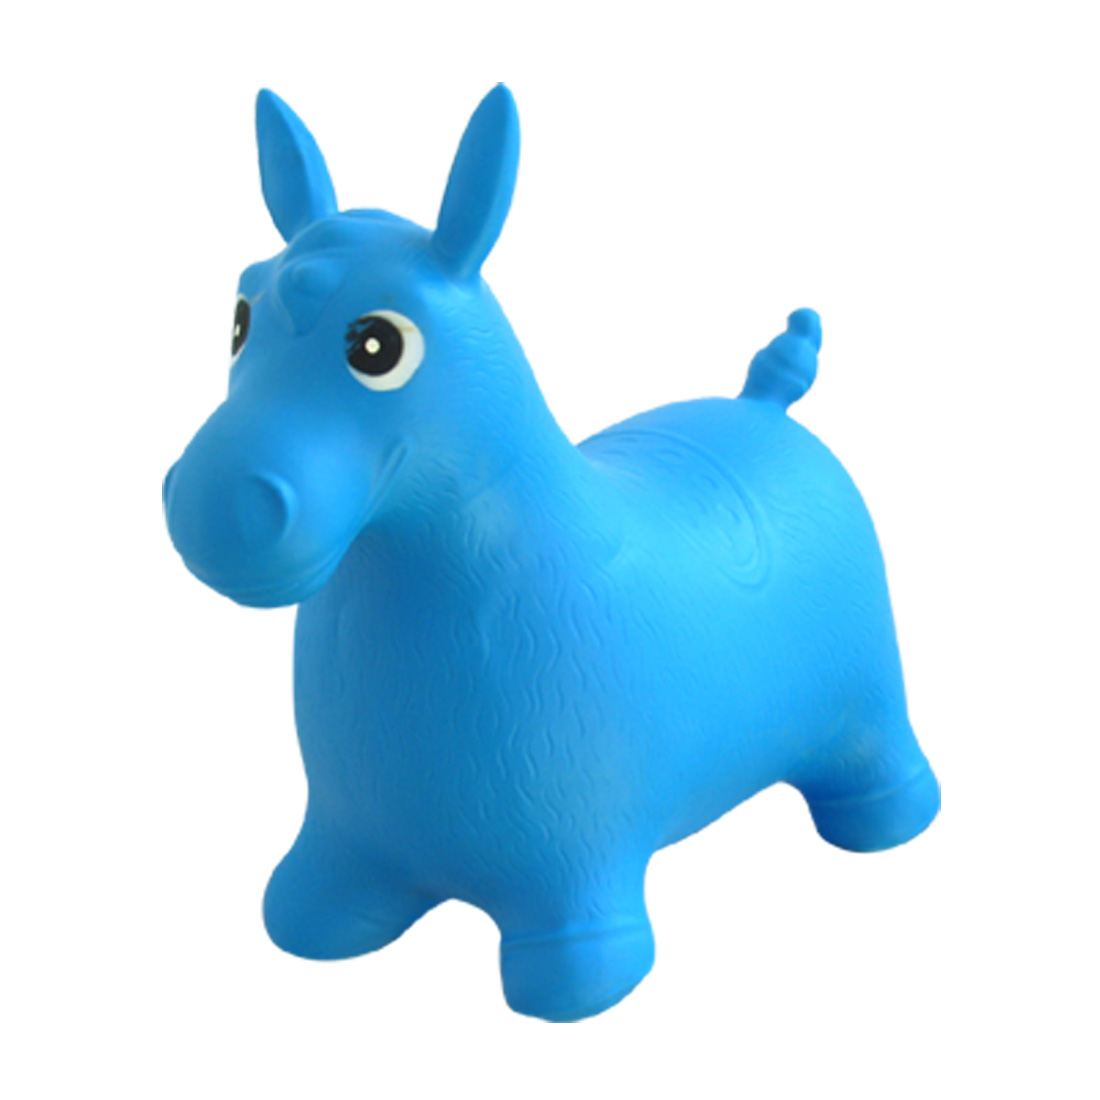 Toy - Playing Horse Baby Stool - Blue